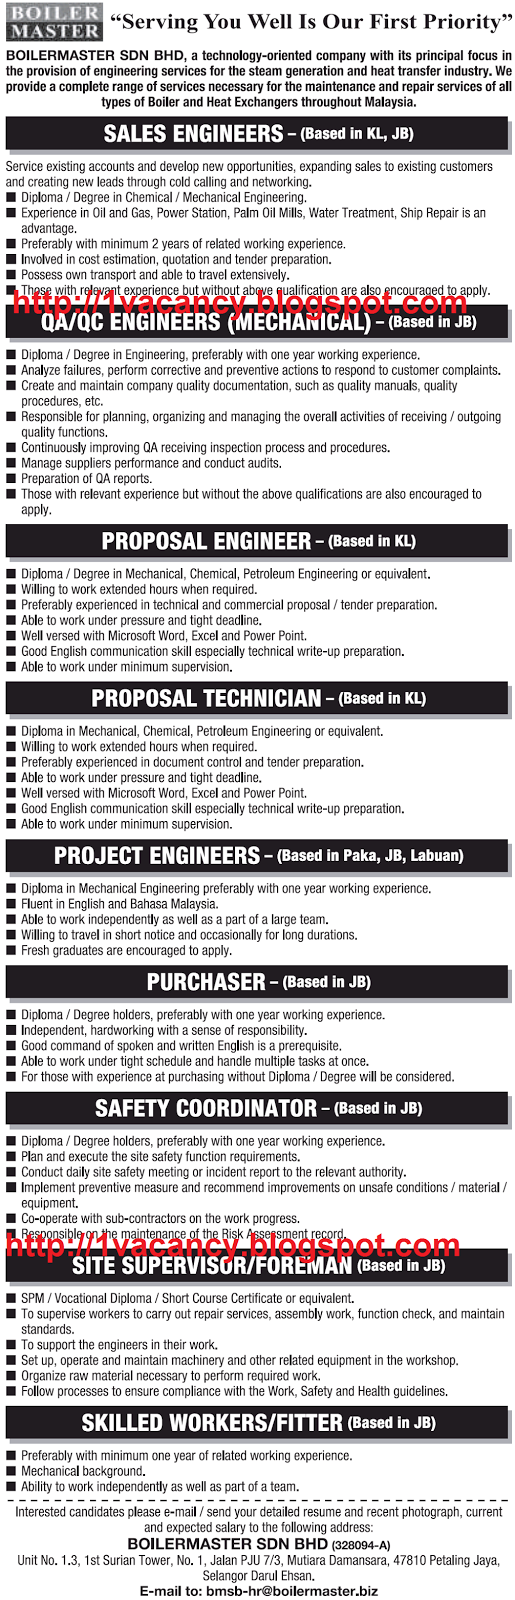 Oil & Gas, Government, and Private Sectors Jobs: Boilermaster Sdn Bhd